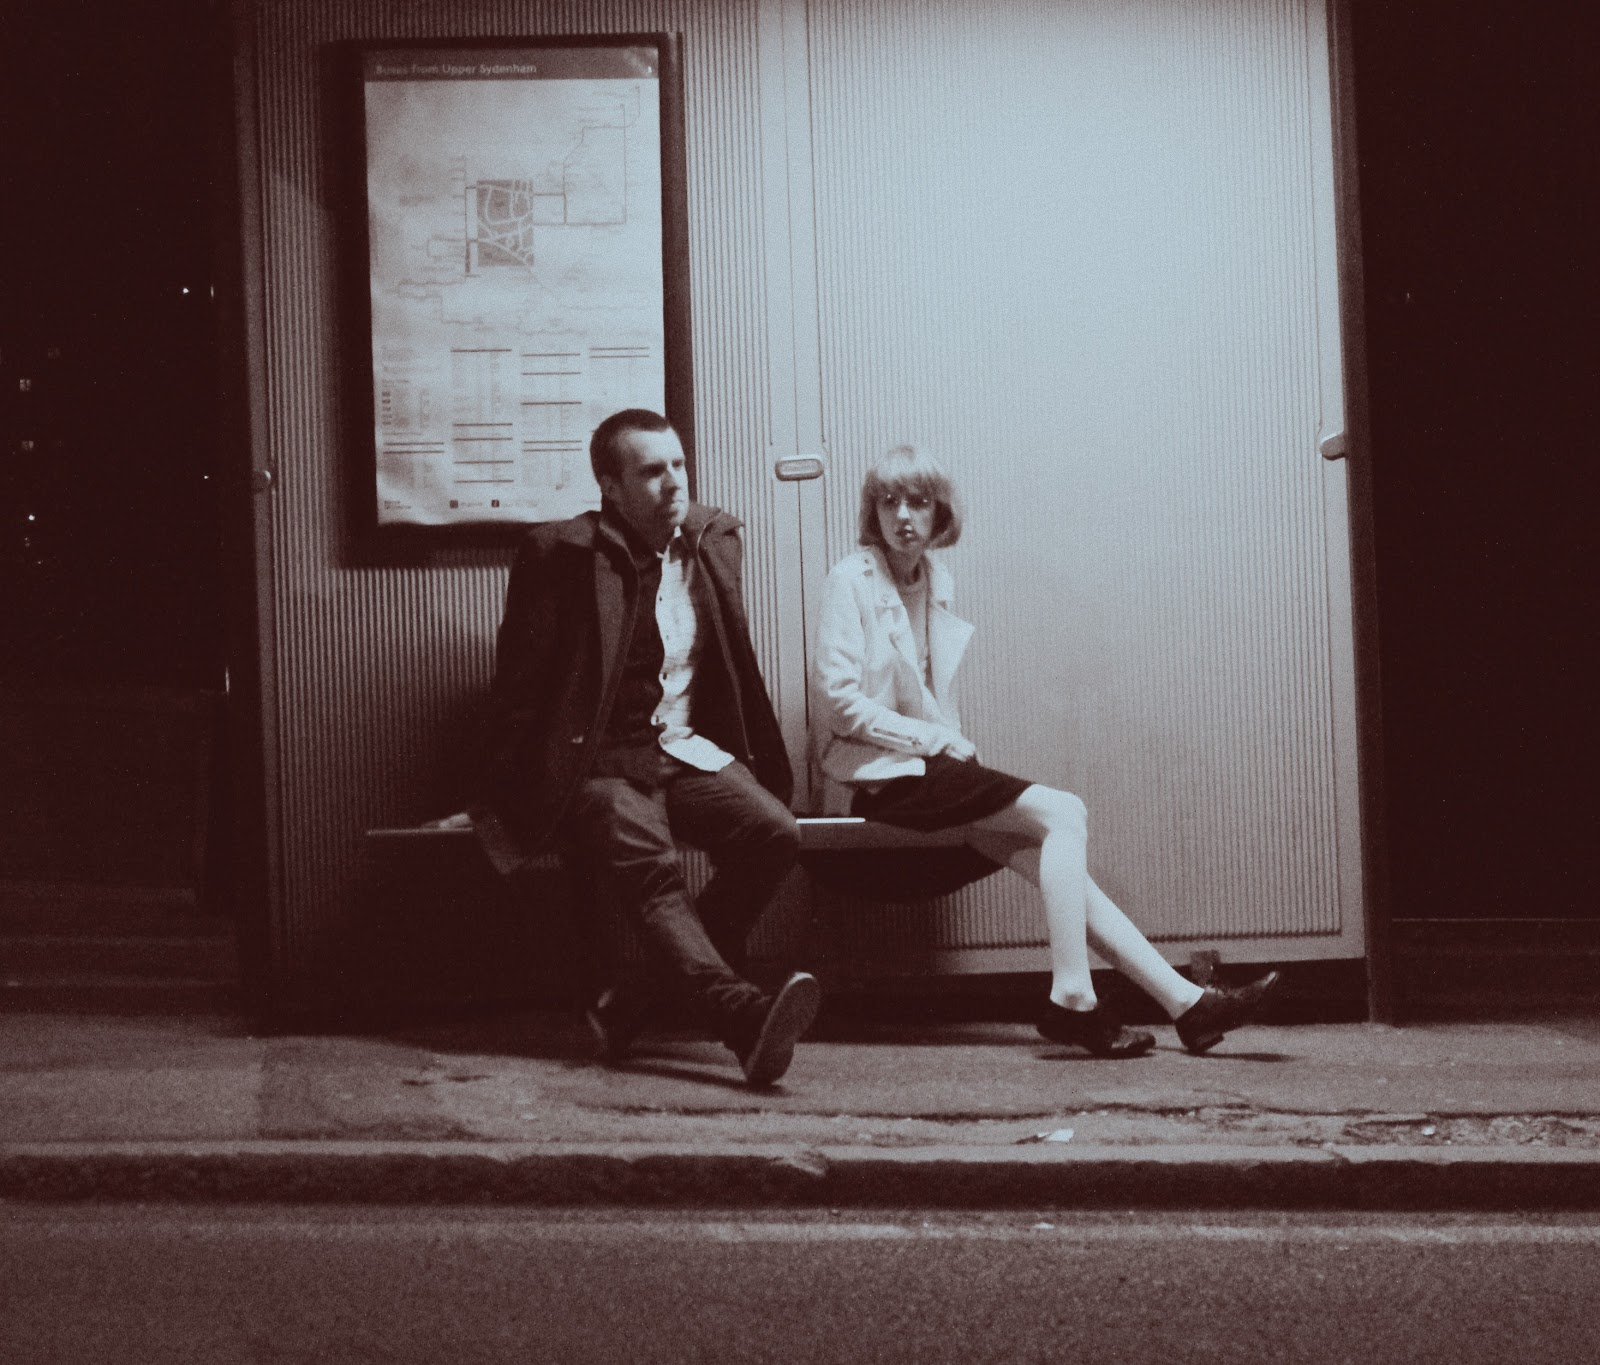 Rescue A Family - A man and woman sit at a bus stop.